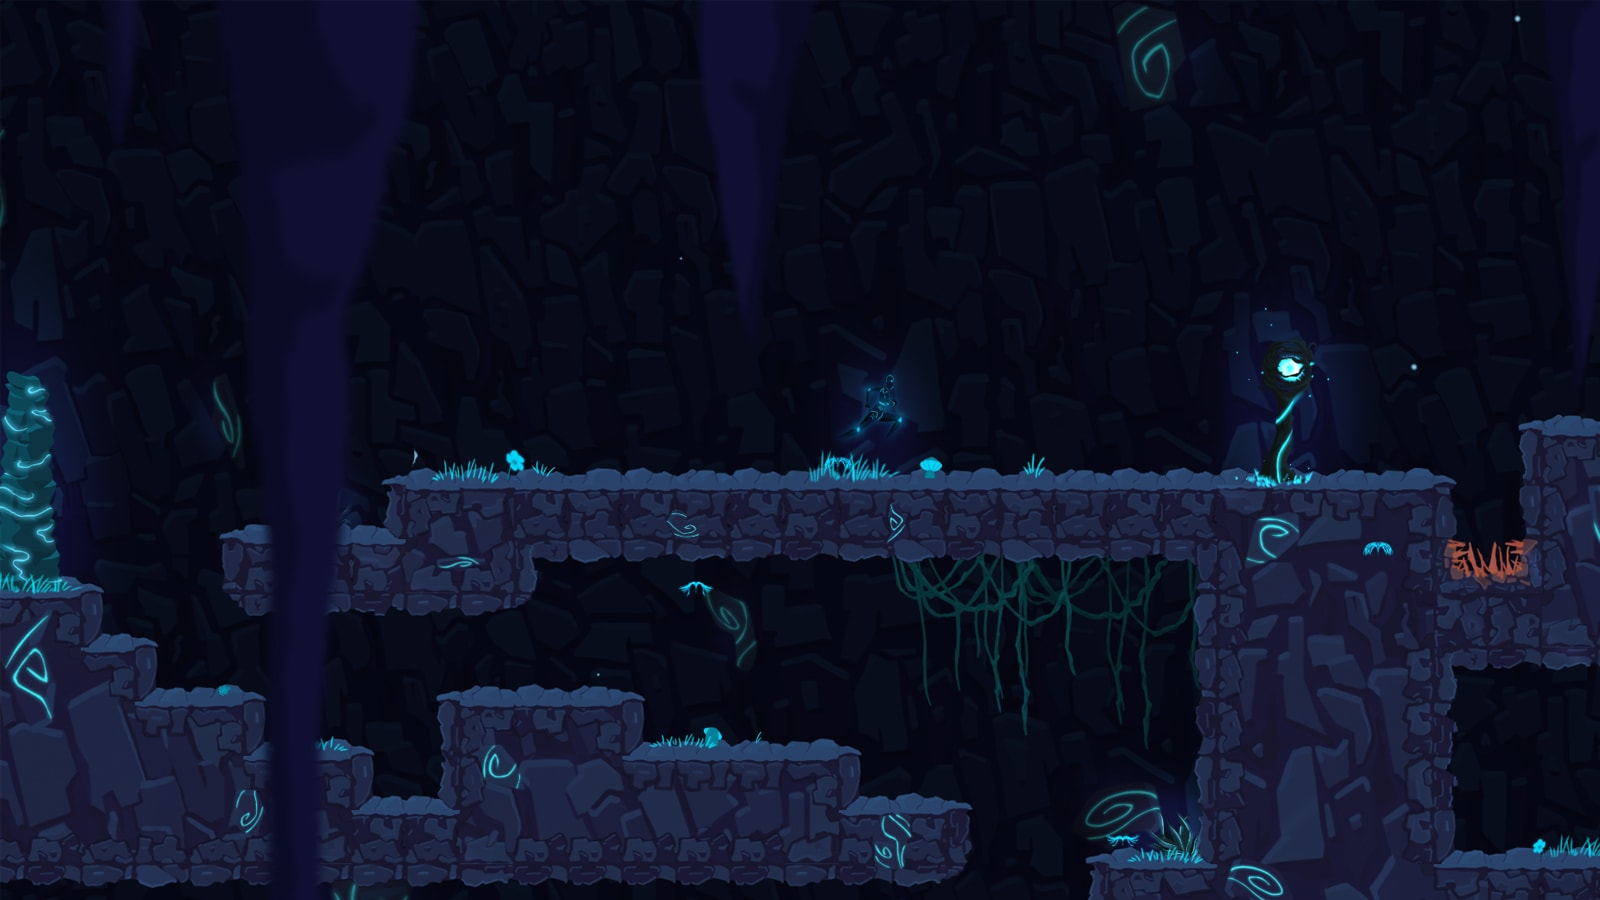 An android runs toward a glowing blue orb in a rocky, blue setting.